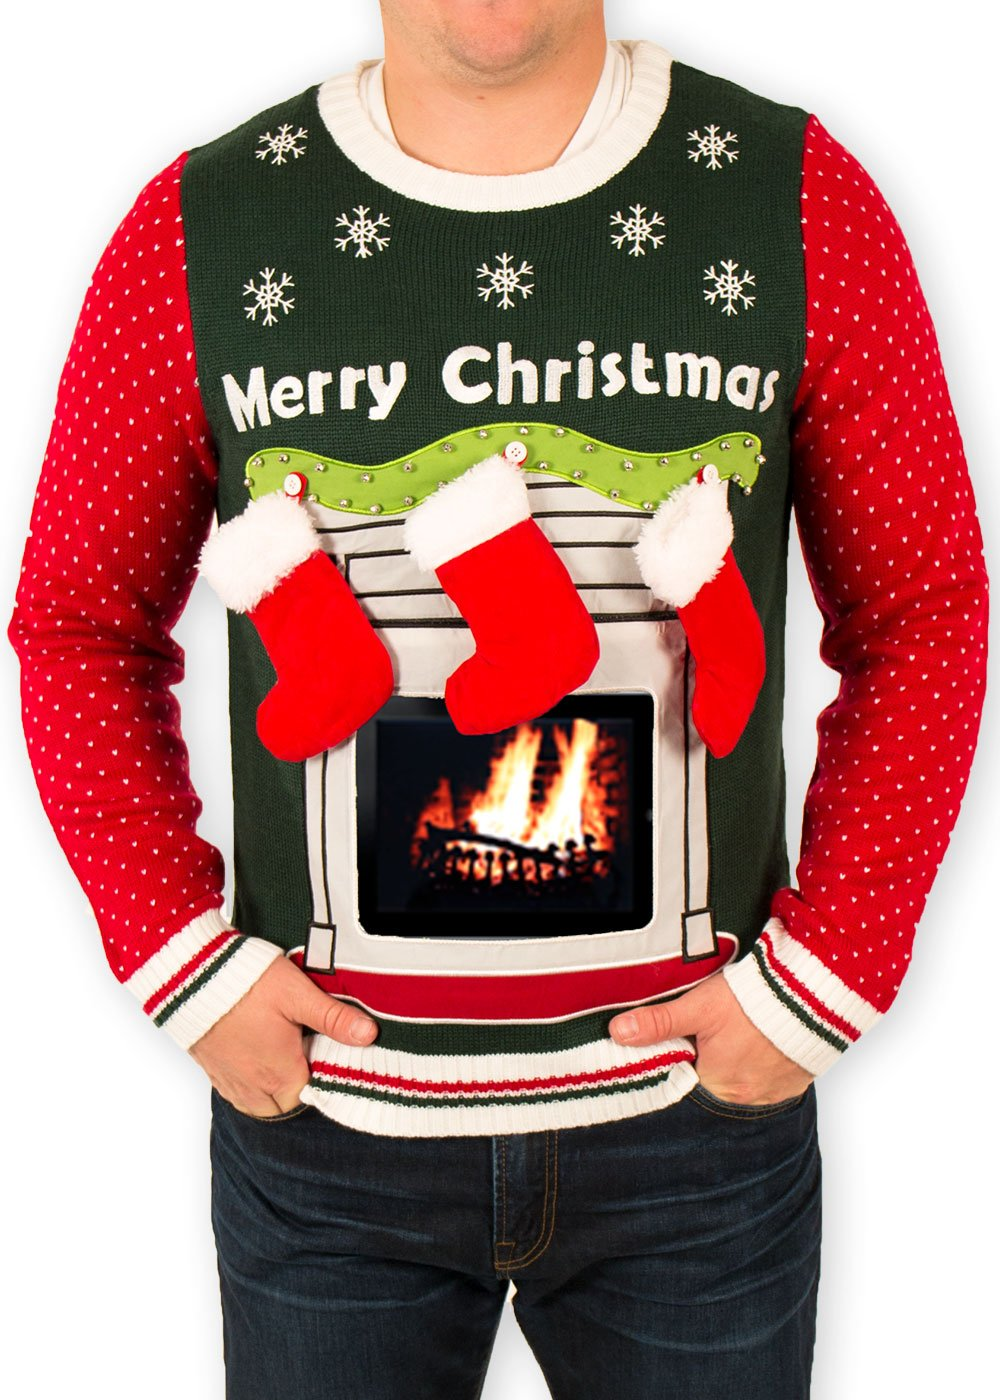 Festified Men's iPad Tablet Fireplace Ugly Christmas Sweater in Green (2X-Large)